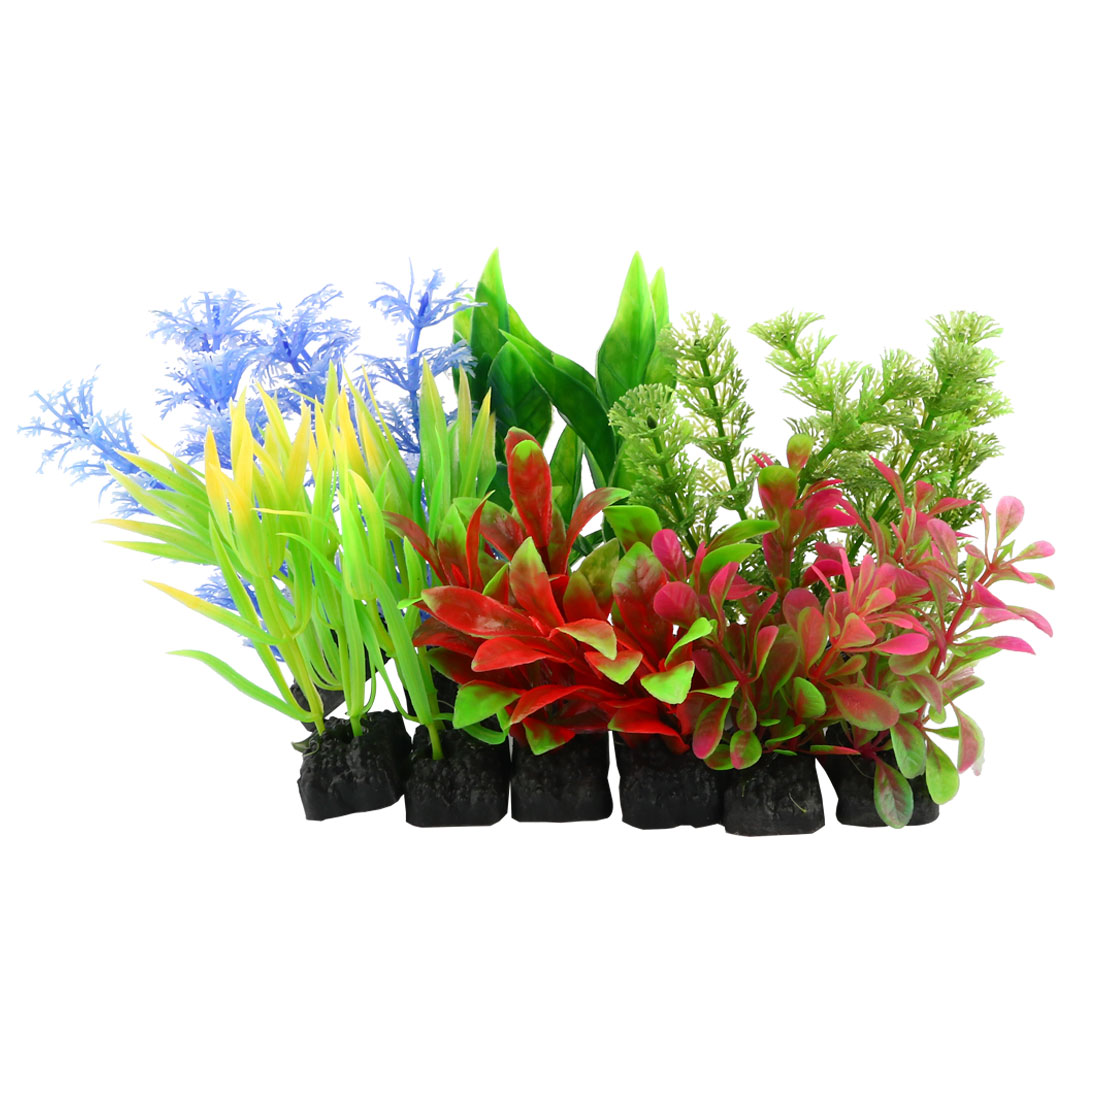 "Fish Tank 3.7"" Manmade Assorted Colored Plastic Aquatic Plants 12 Pcs"